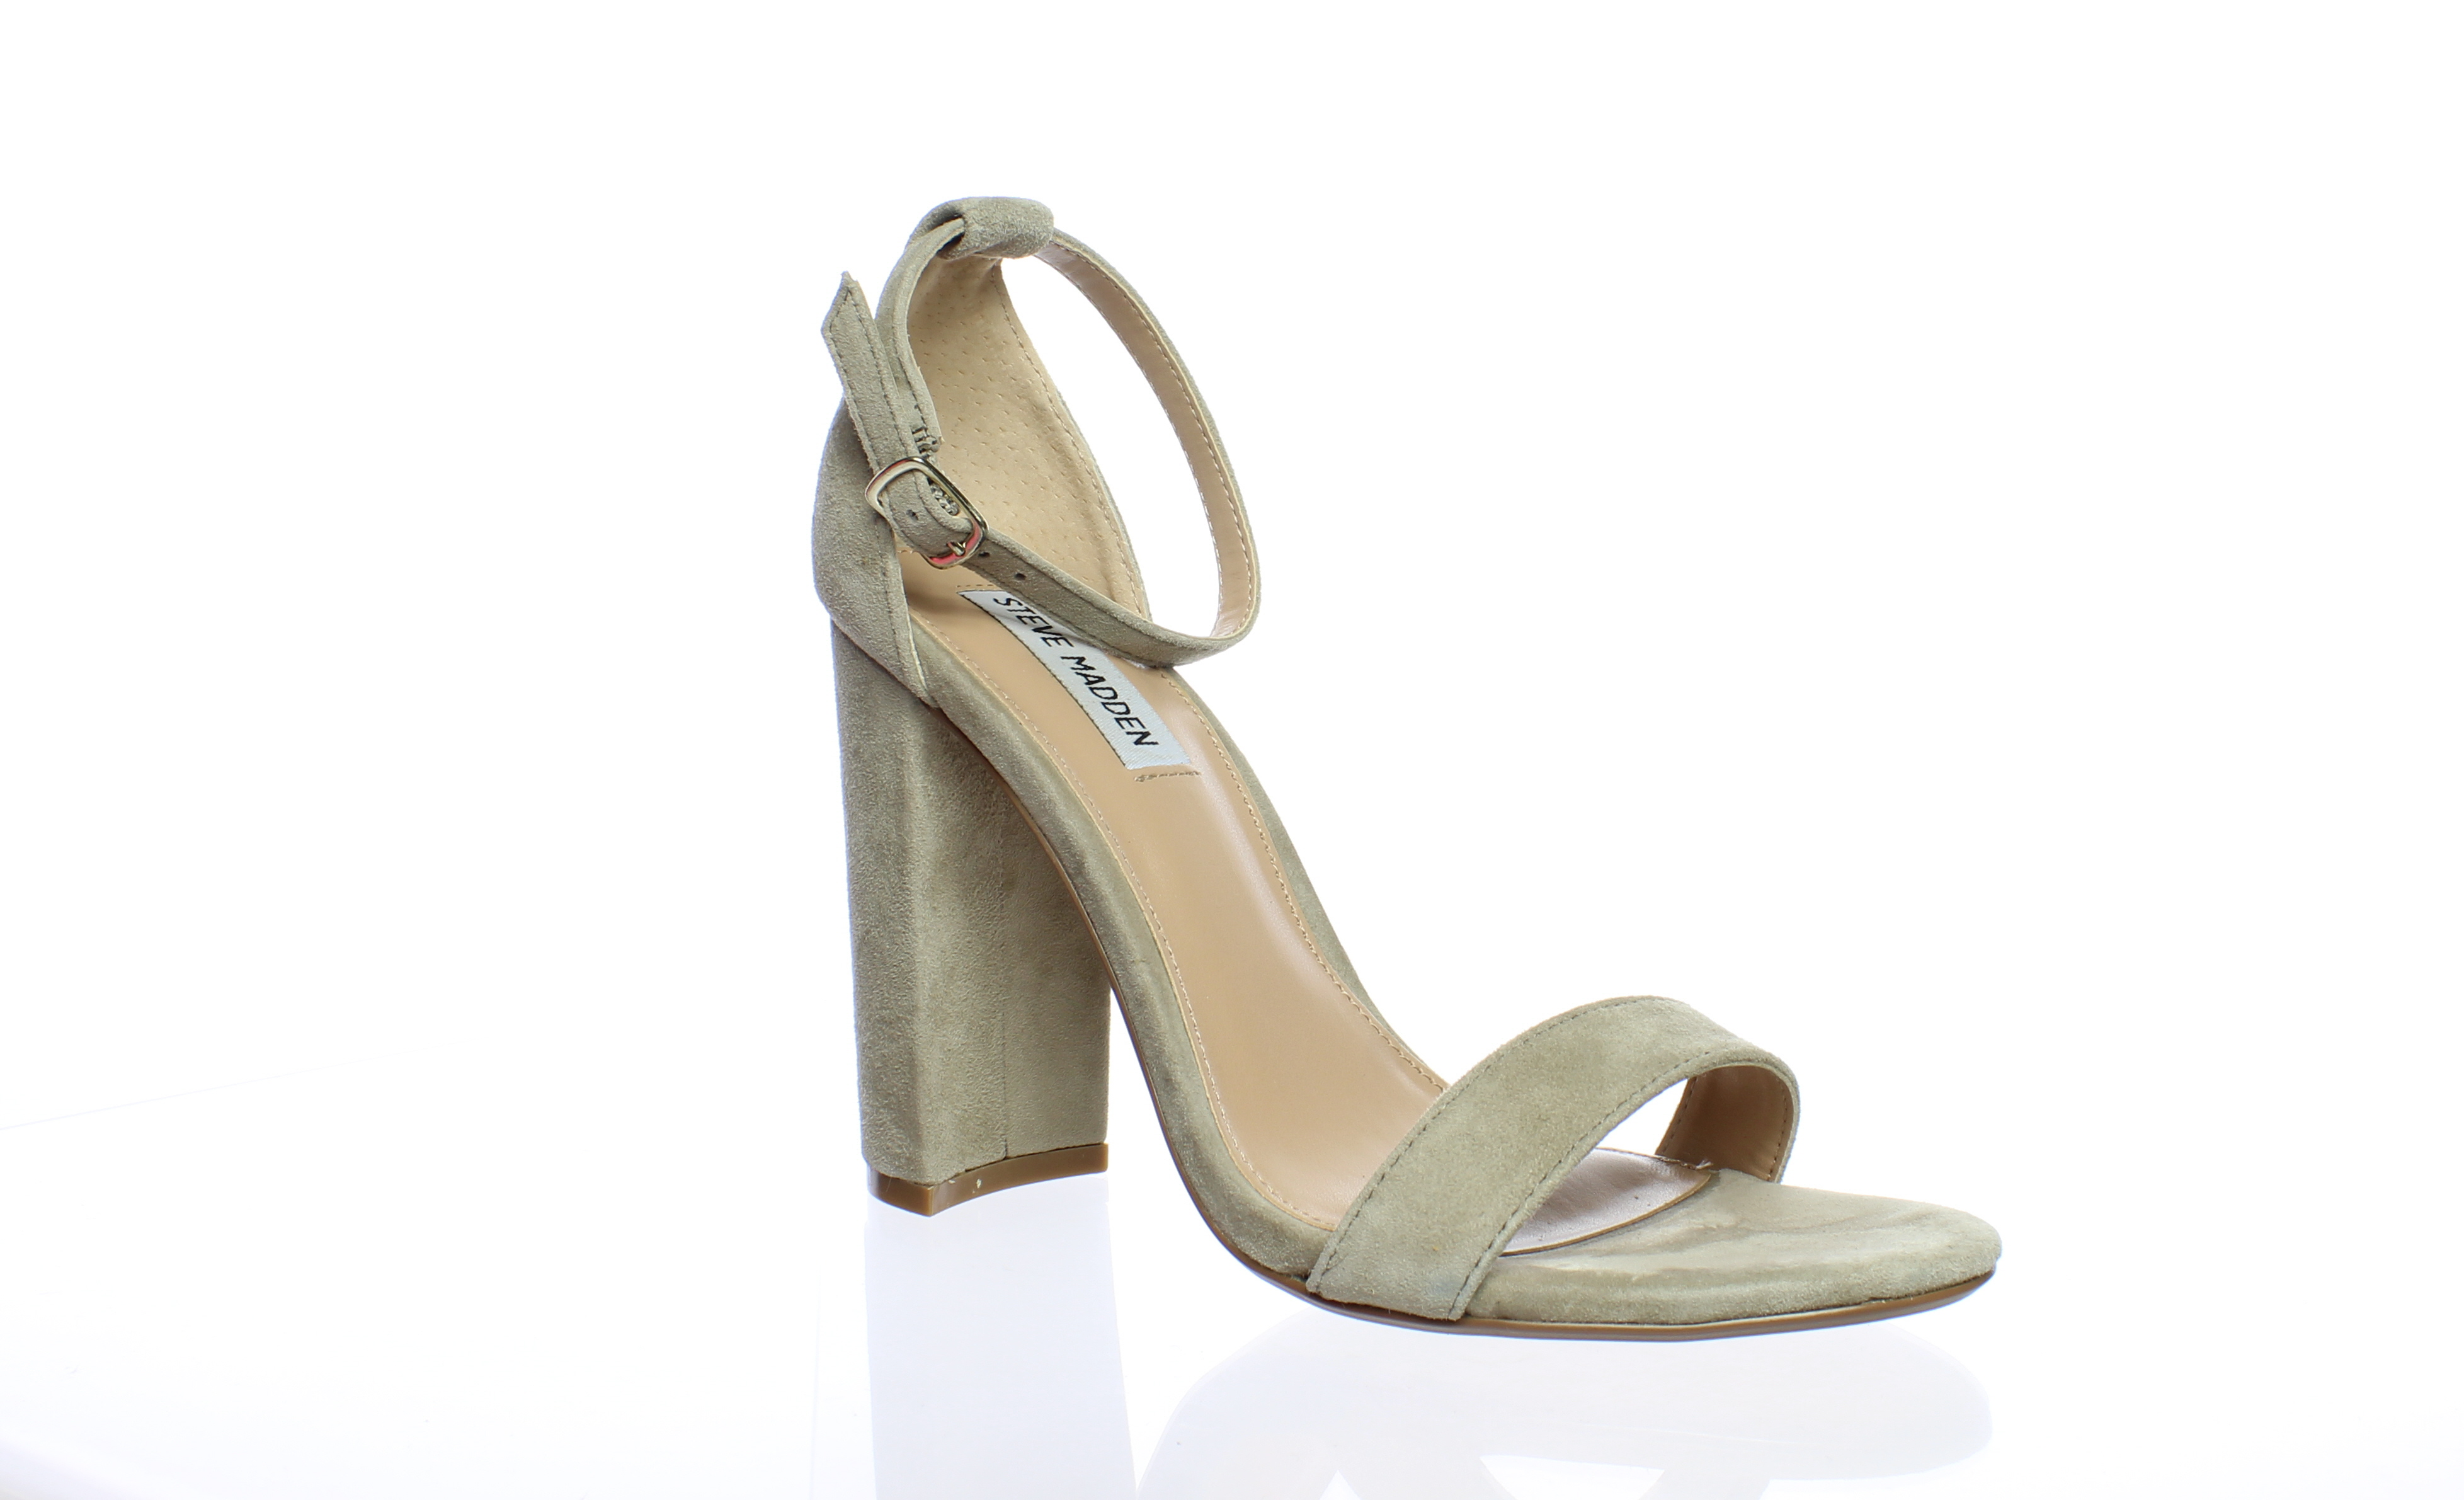 5c339f133b7 Steve Madden Womens Carrson Taupe Suede Ankle Strap Heels Size 7.5 ...